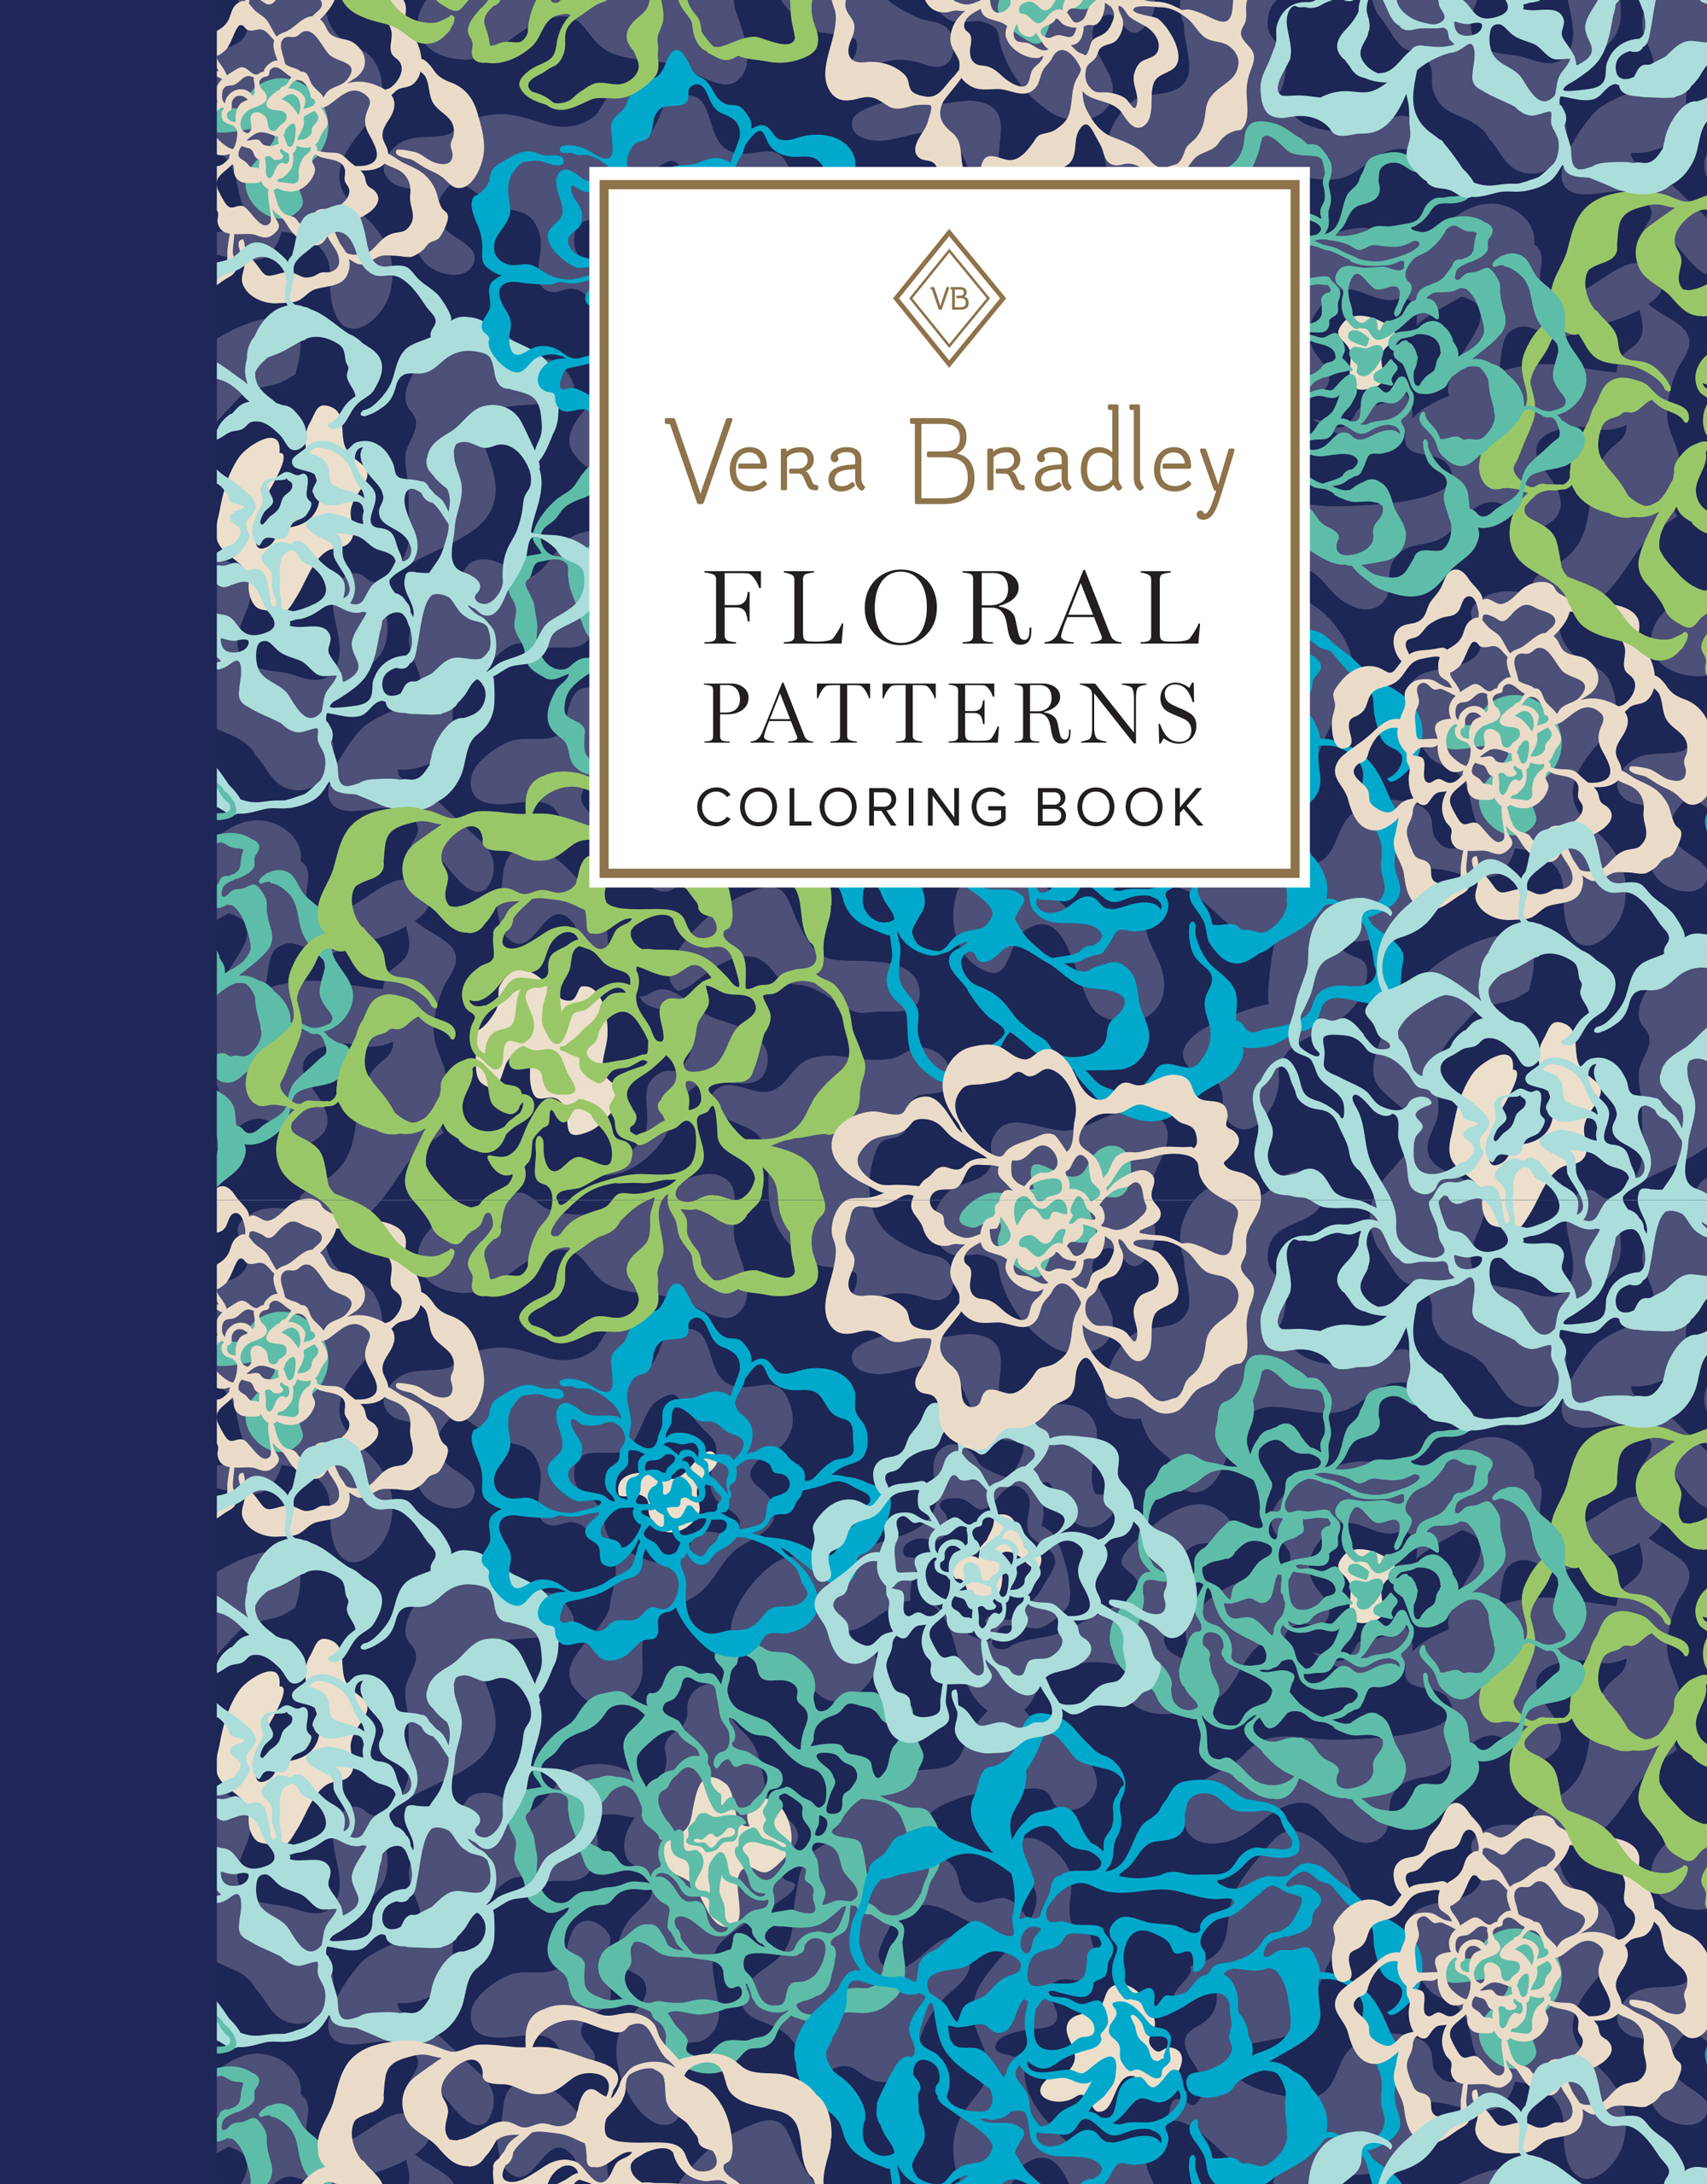 vera bradley floral patterns coloring bookcreate something beautiful every day with authentic vera bradley floral designs in this inspiring coloring book - Paisley Designs Coloring Book